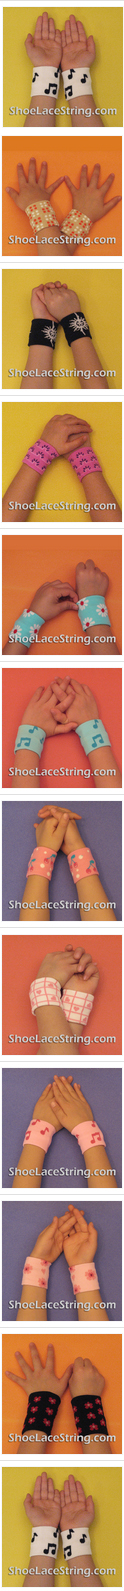 shoe laces shoe strings kids wrist bands for party